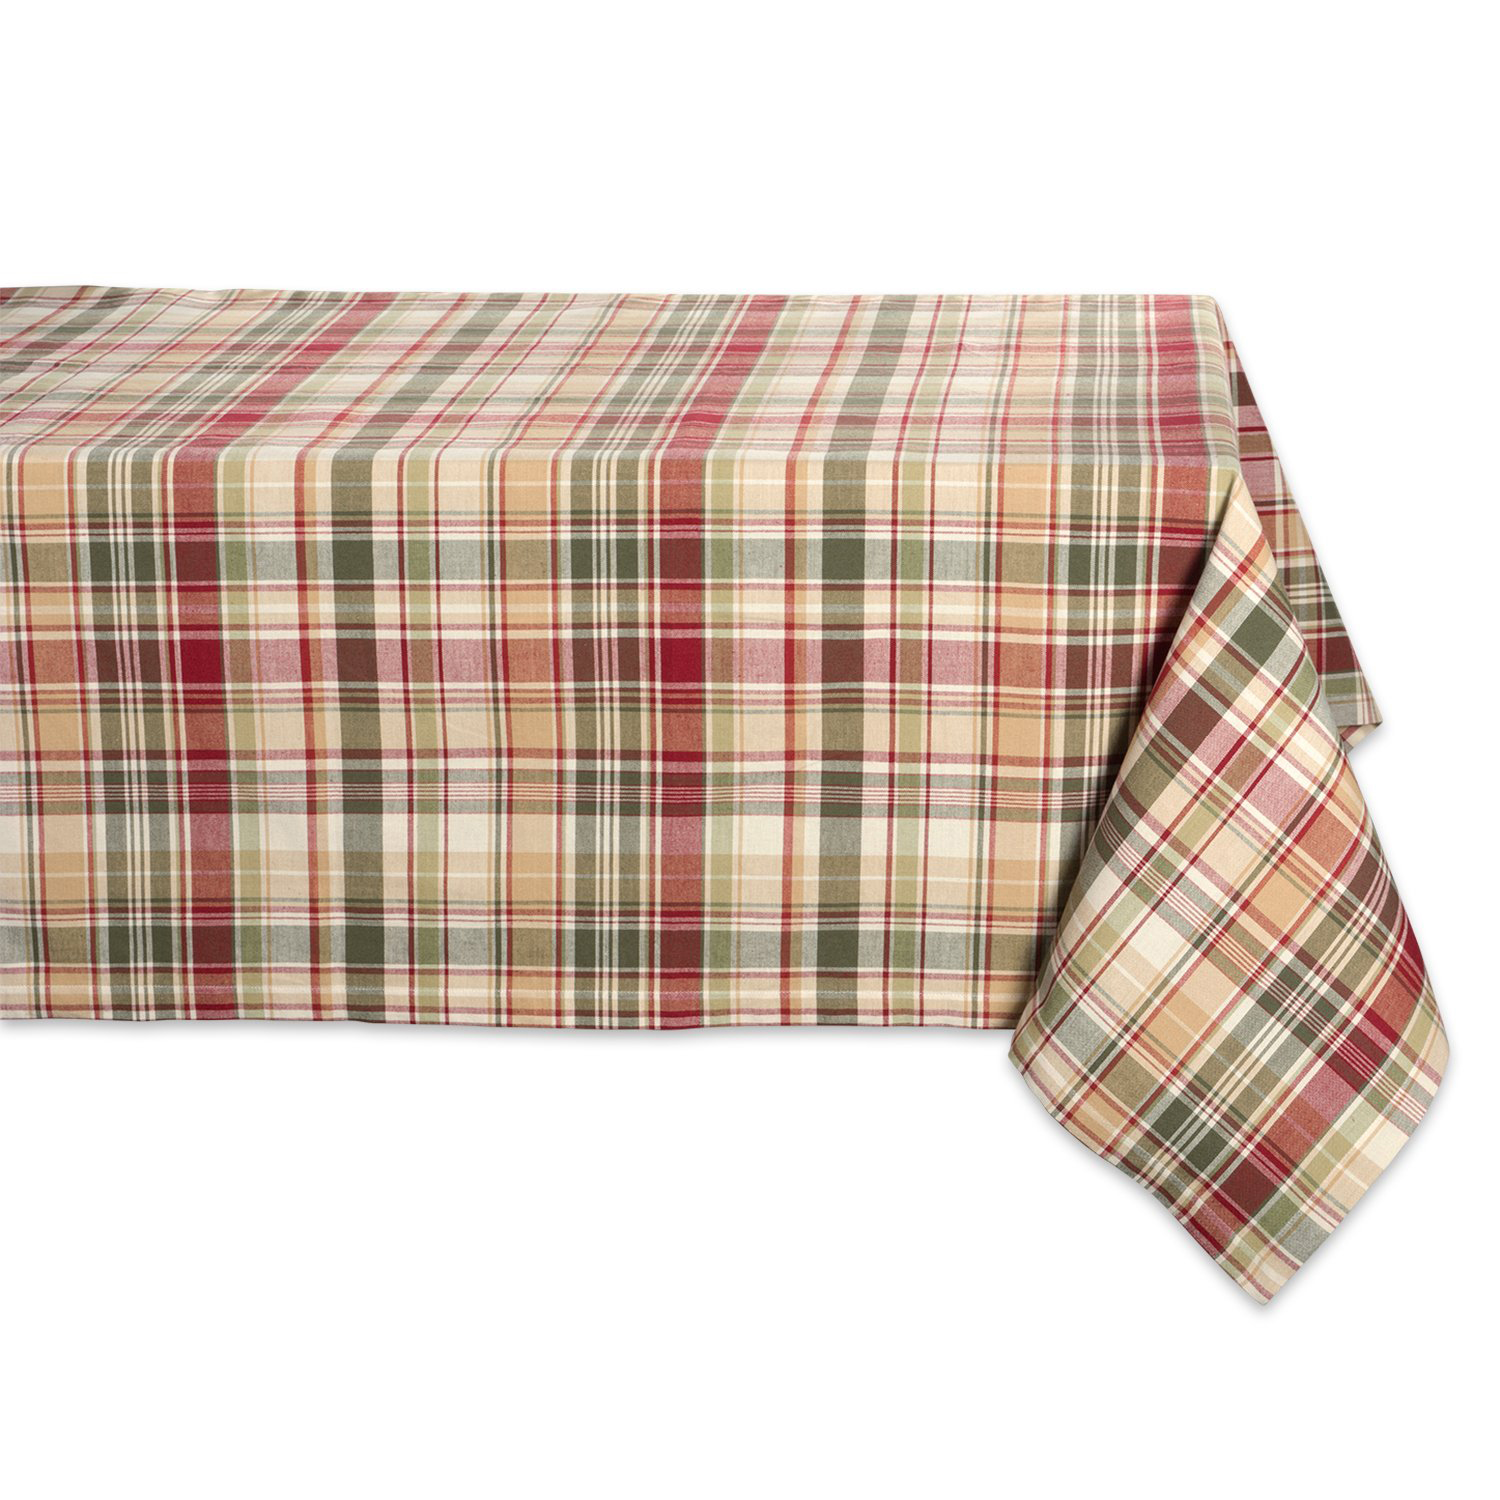 Cabin Plaid Square Tablecloth